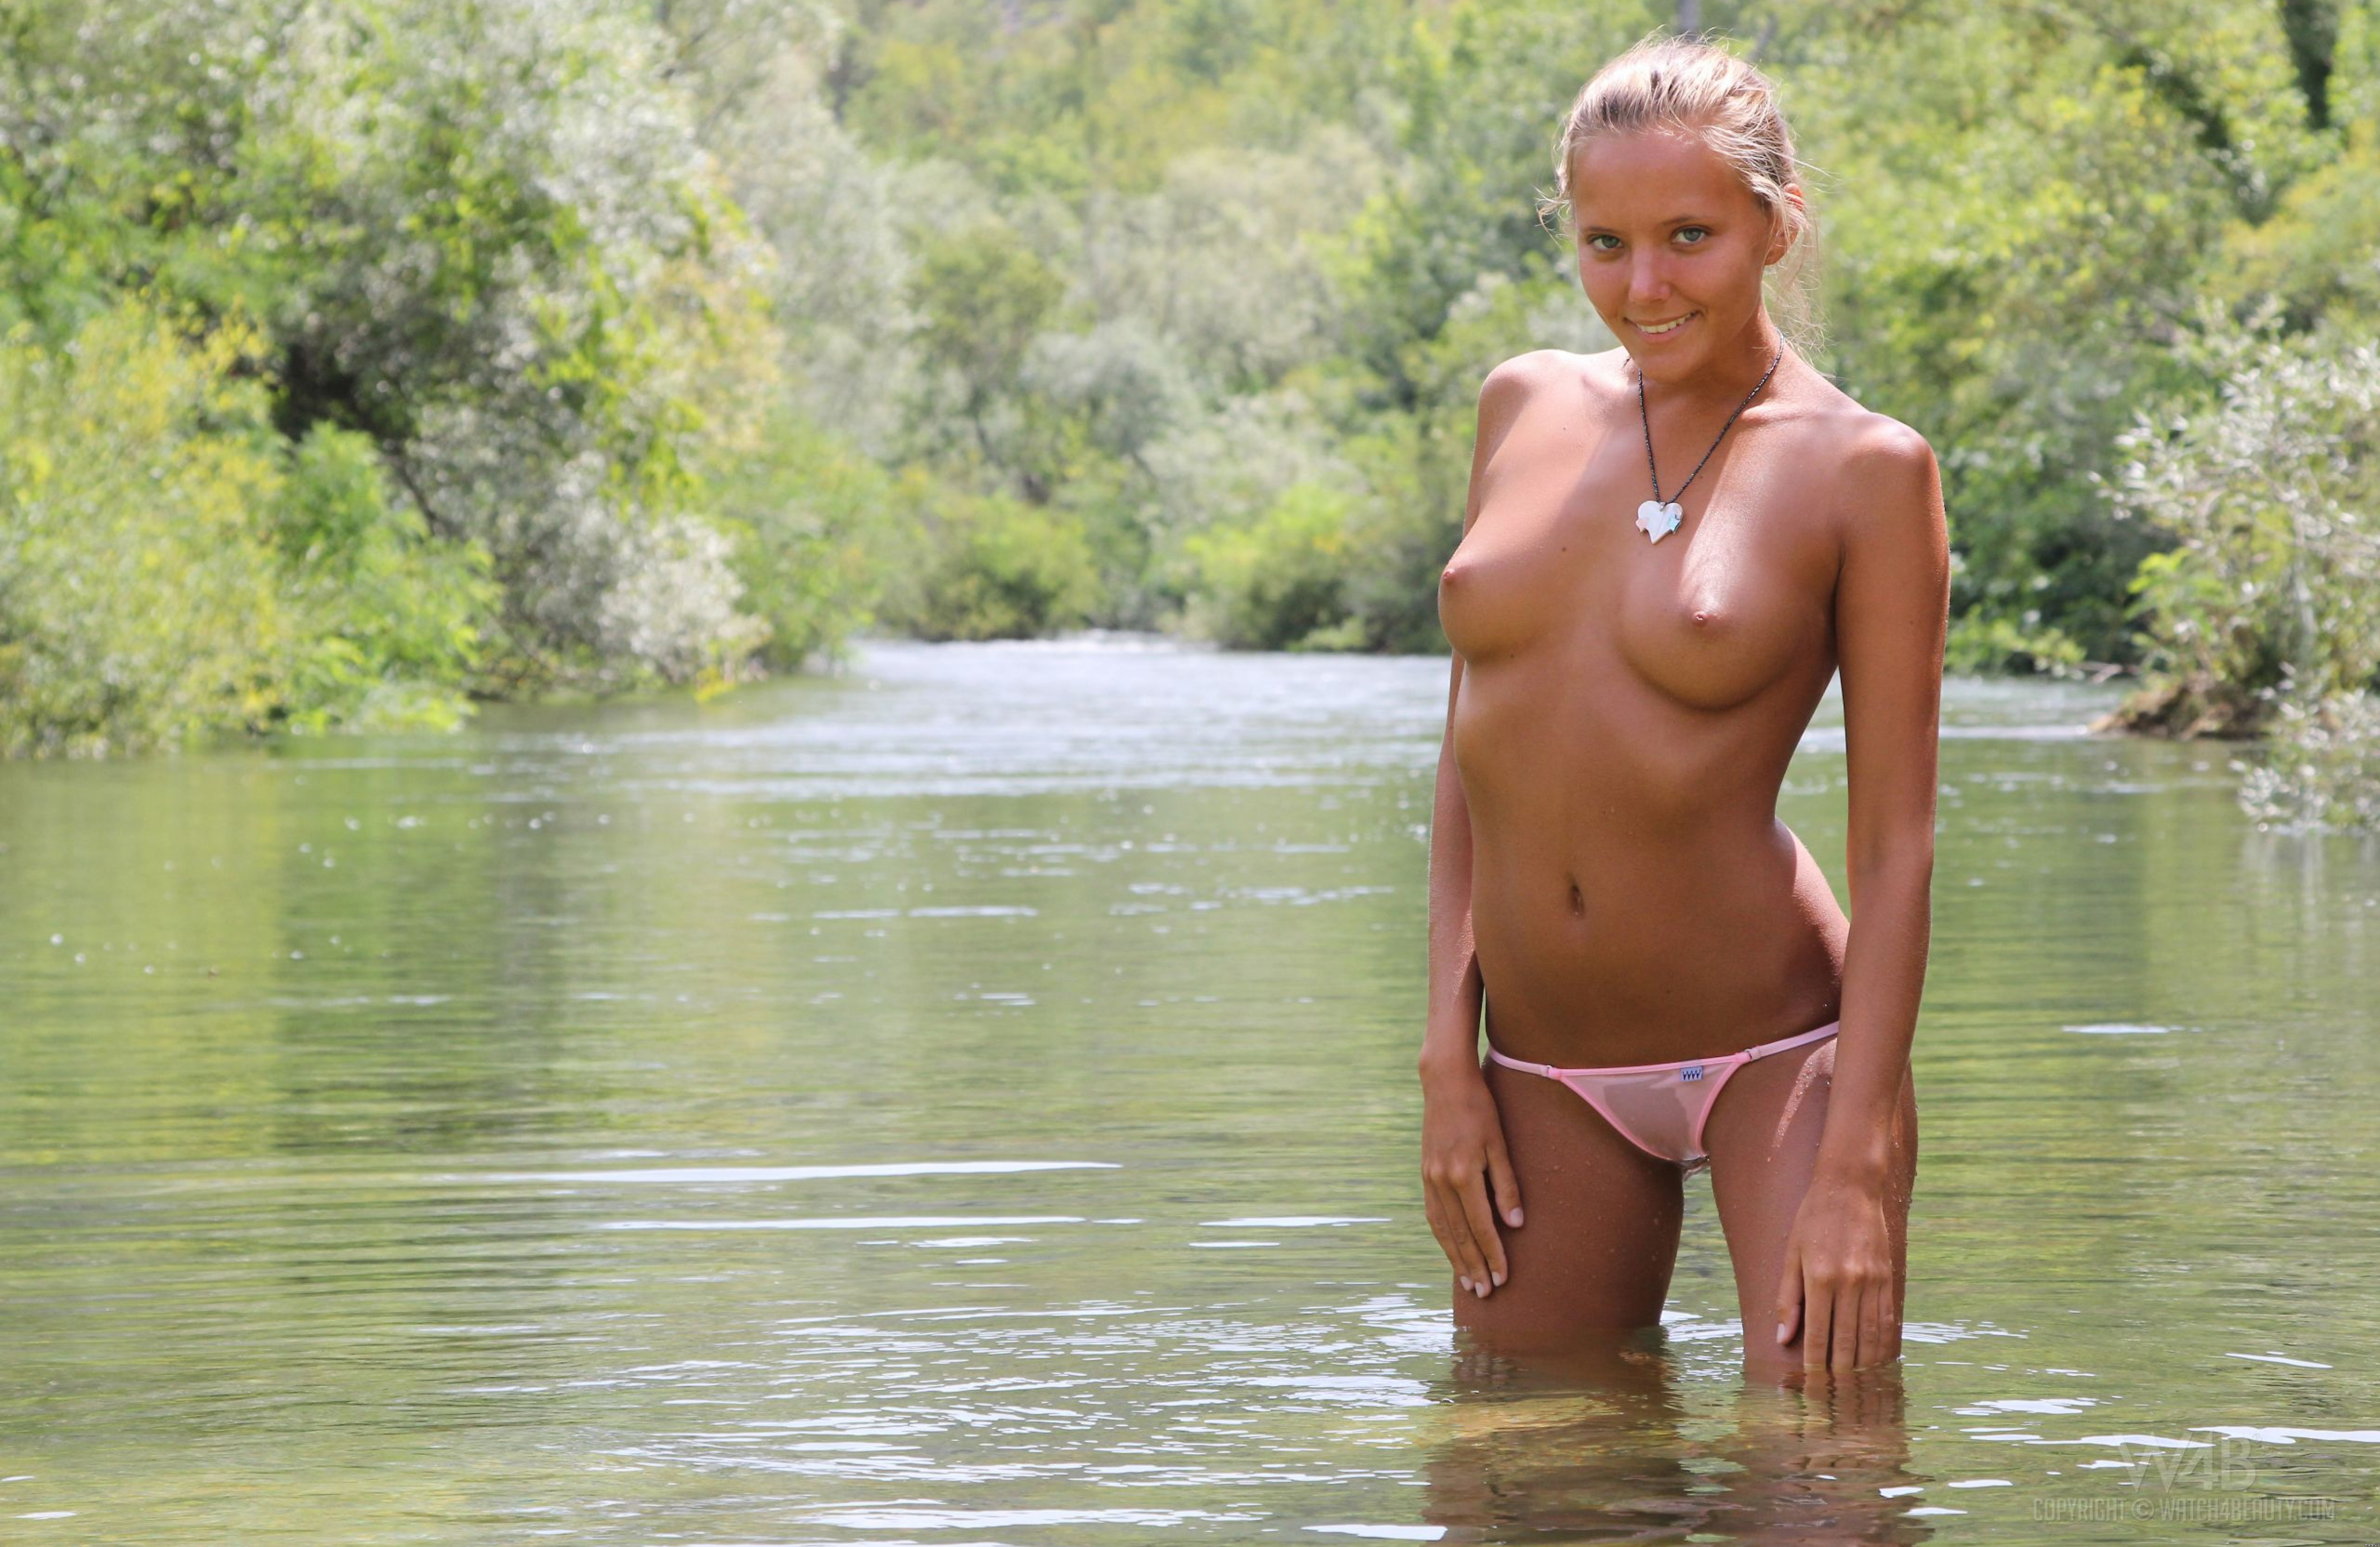 Katya wicked weasel